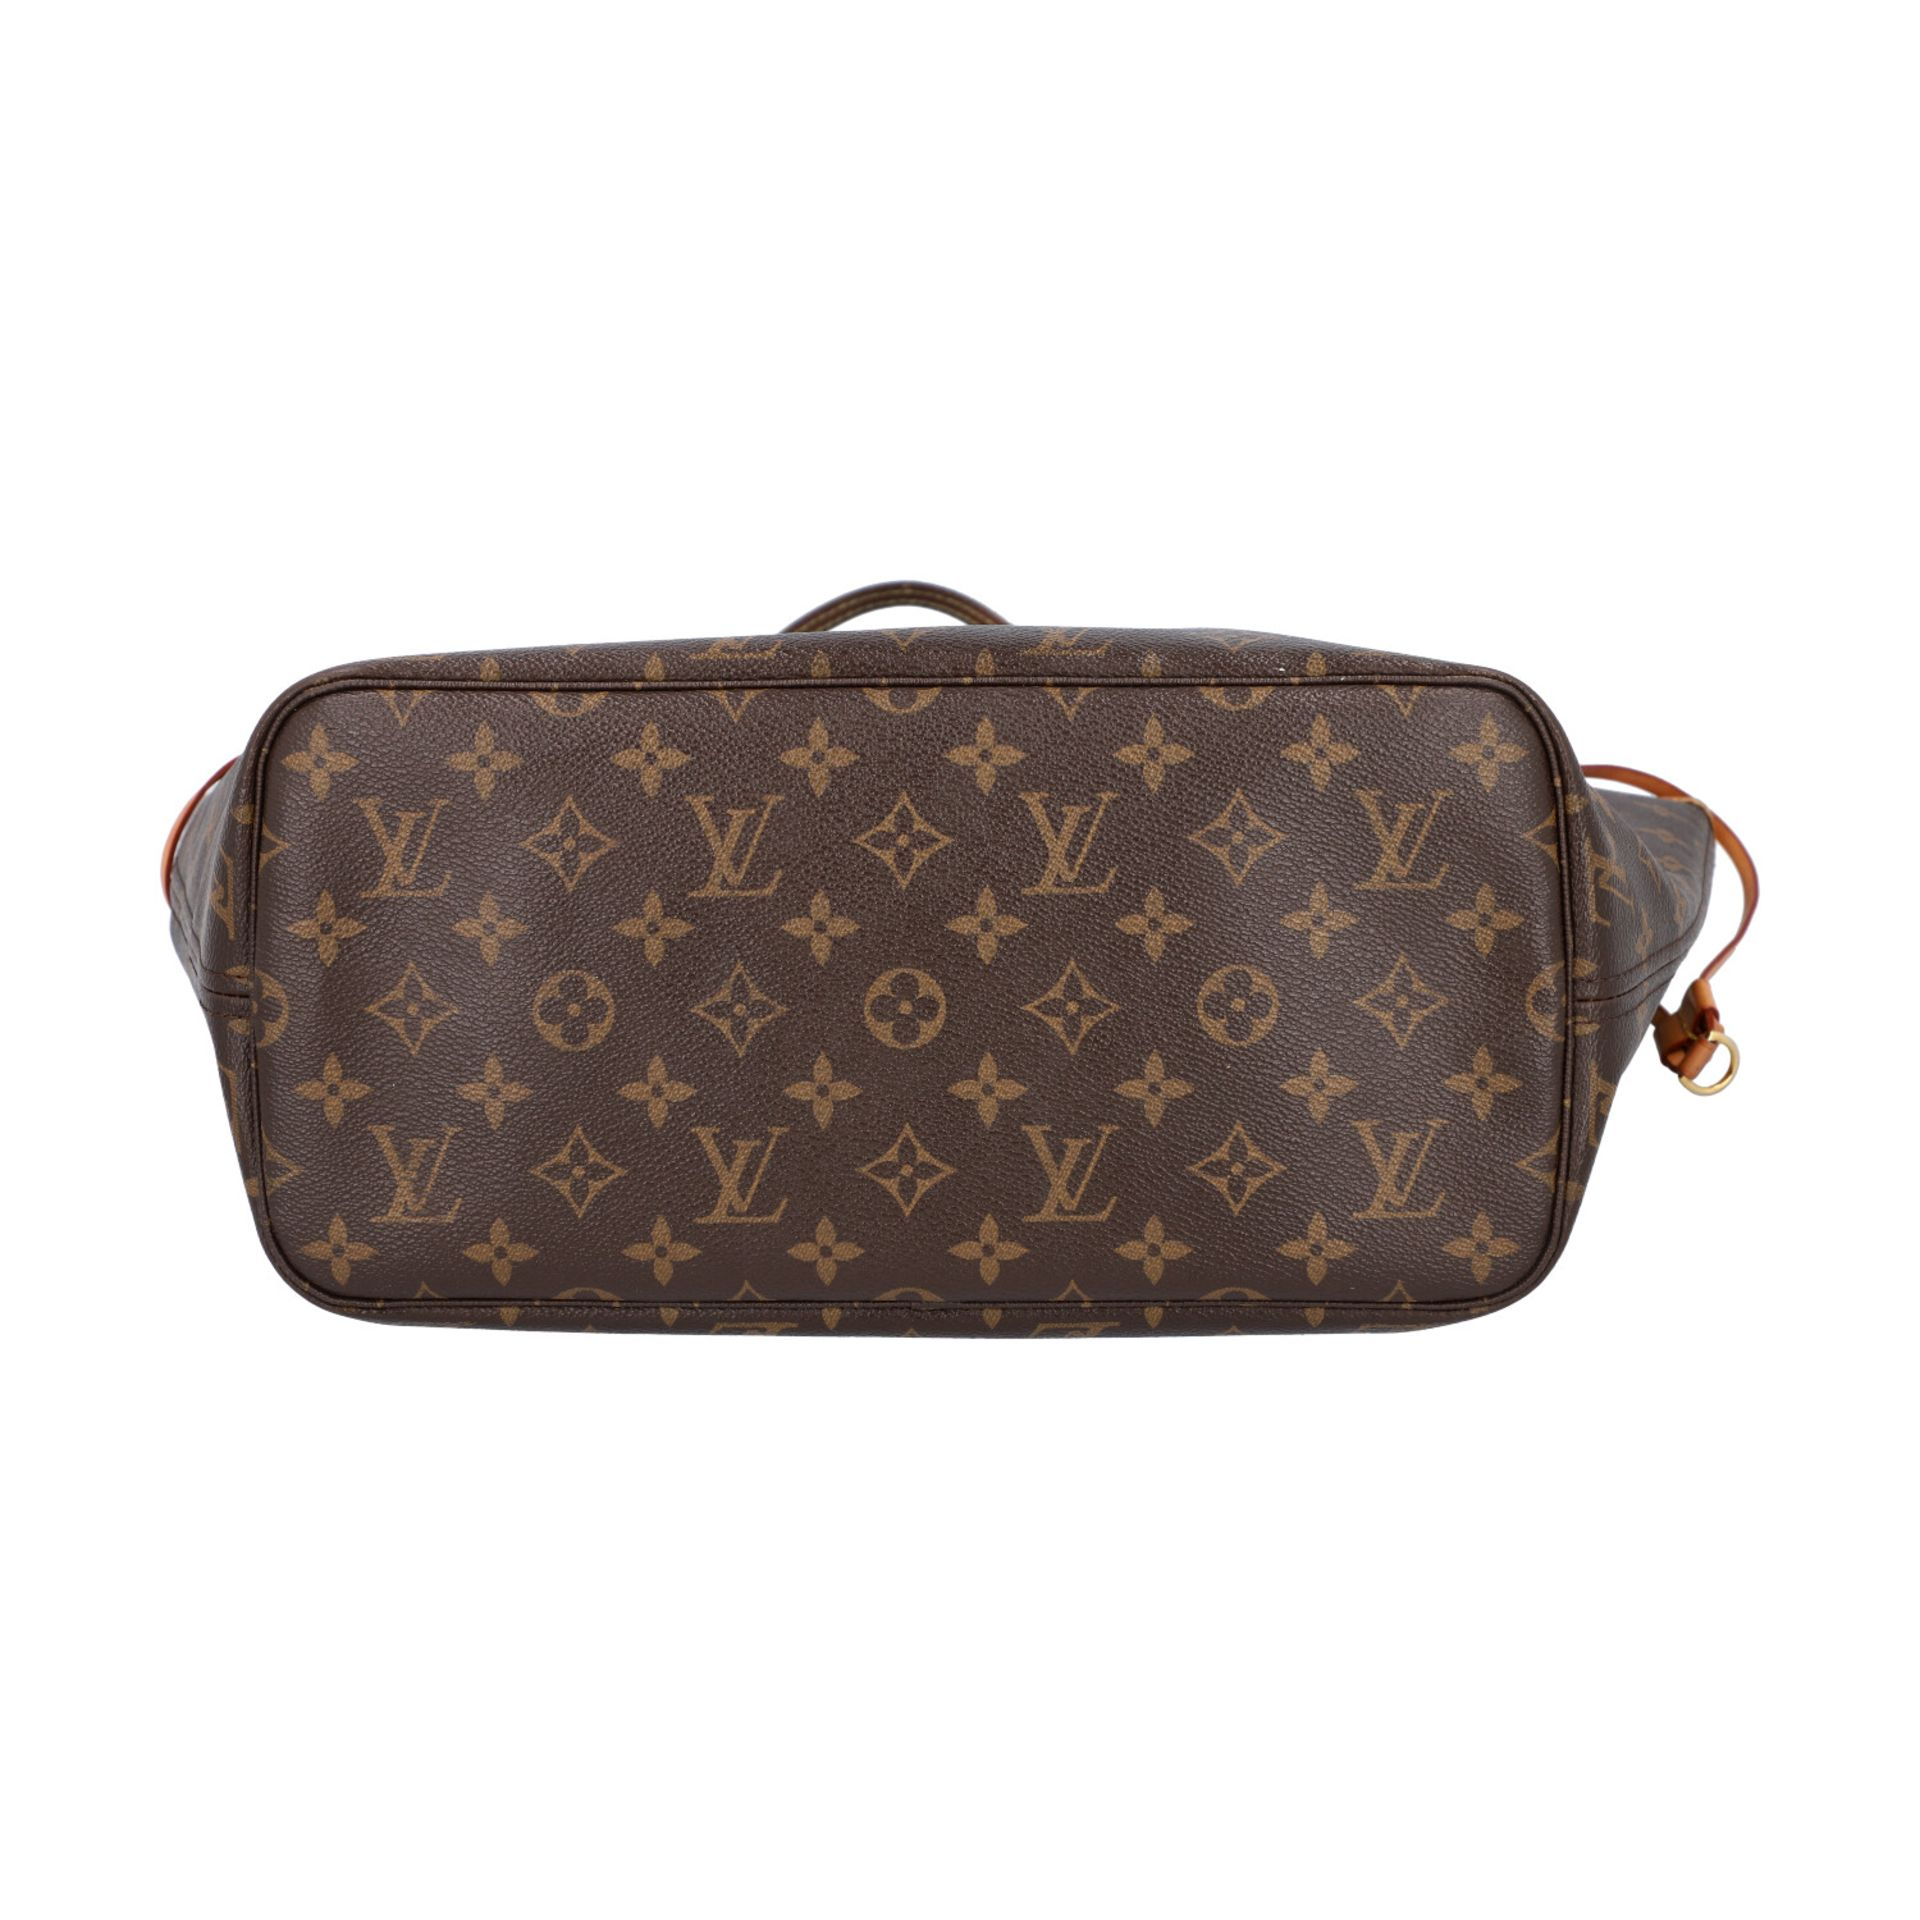 "LOUIS VUITTON Shoppertasche ""NEVERFULL MM"", Koll. 2014. Akt. NP.: 1150,-€. Monogram - Image 5 of 8"